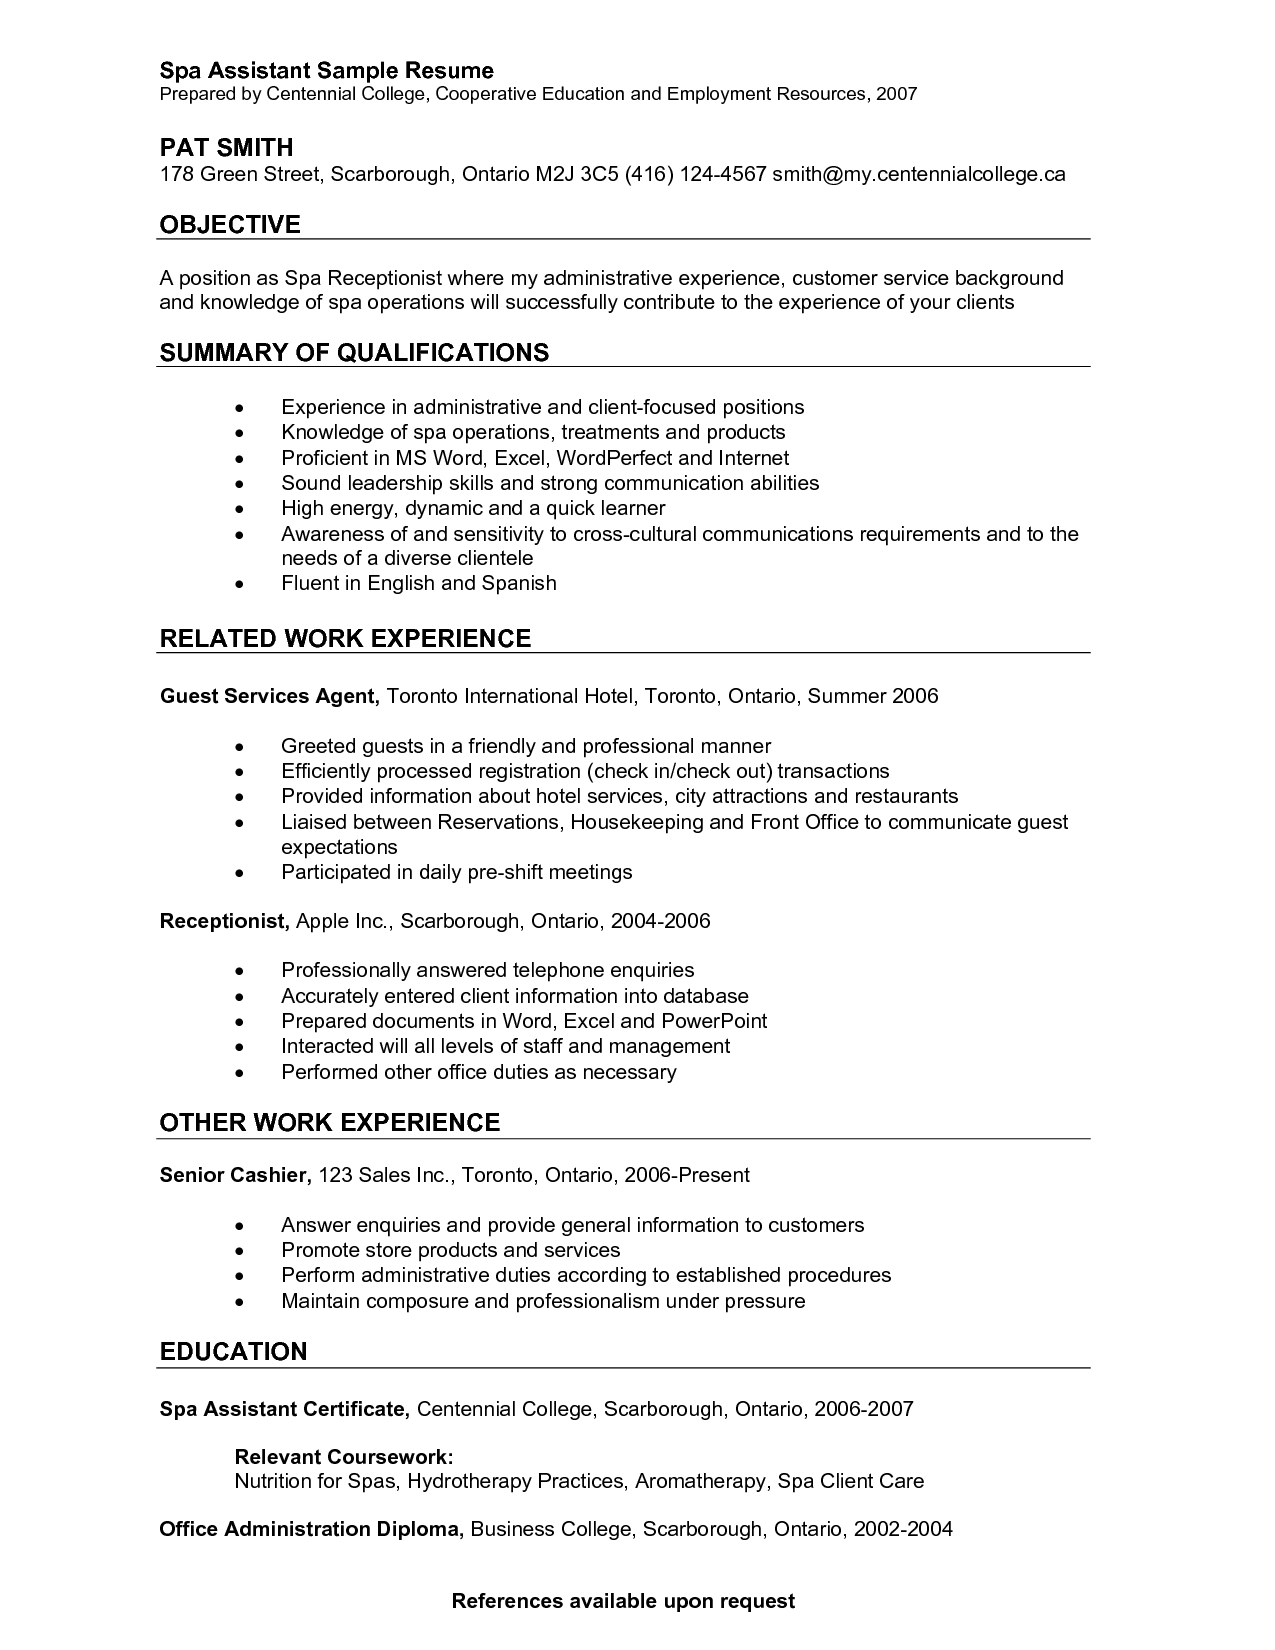 Medical Receptionist Resume Objective Samples  Resume